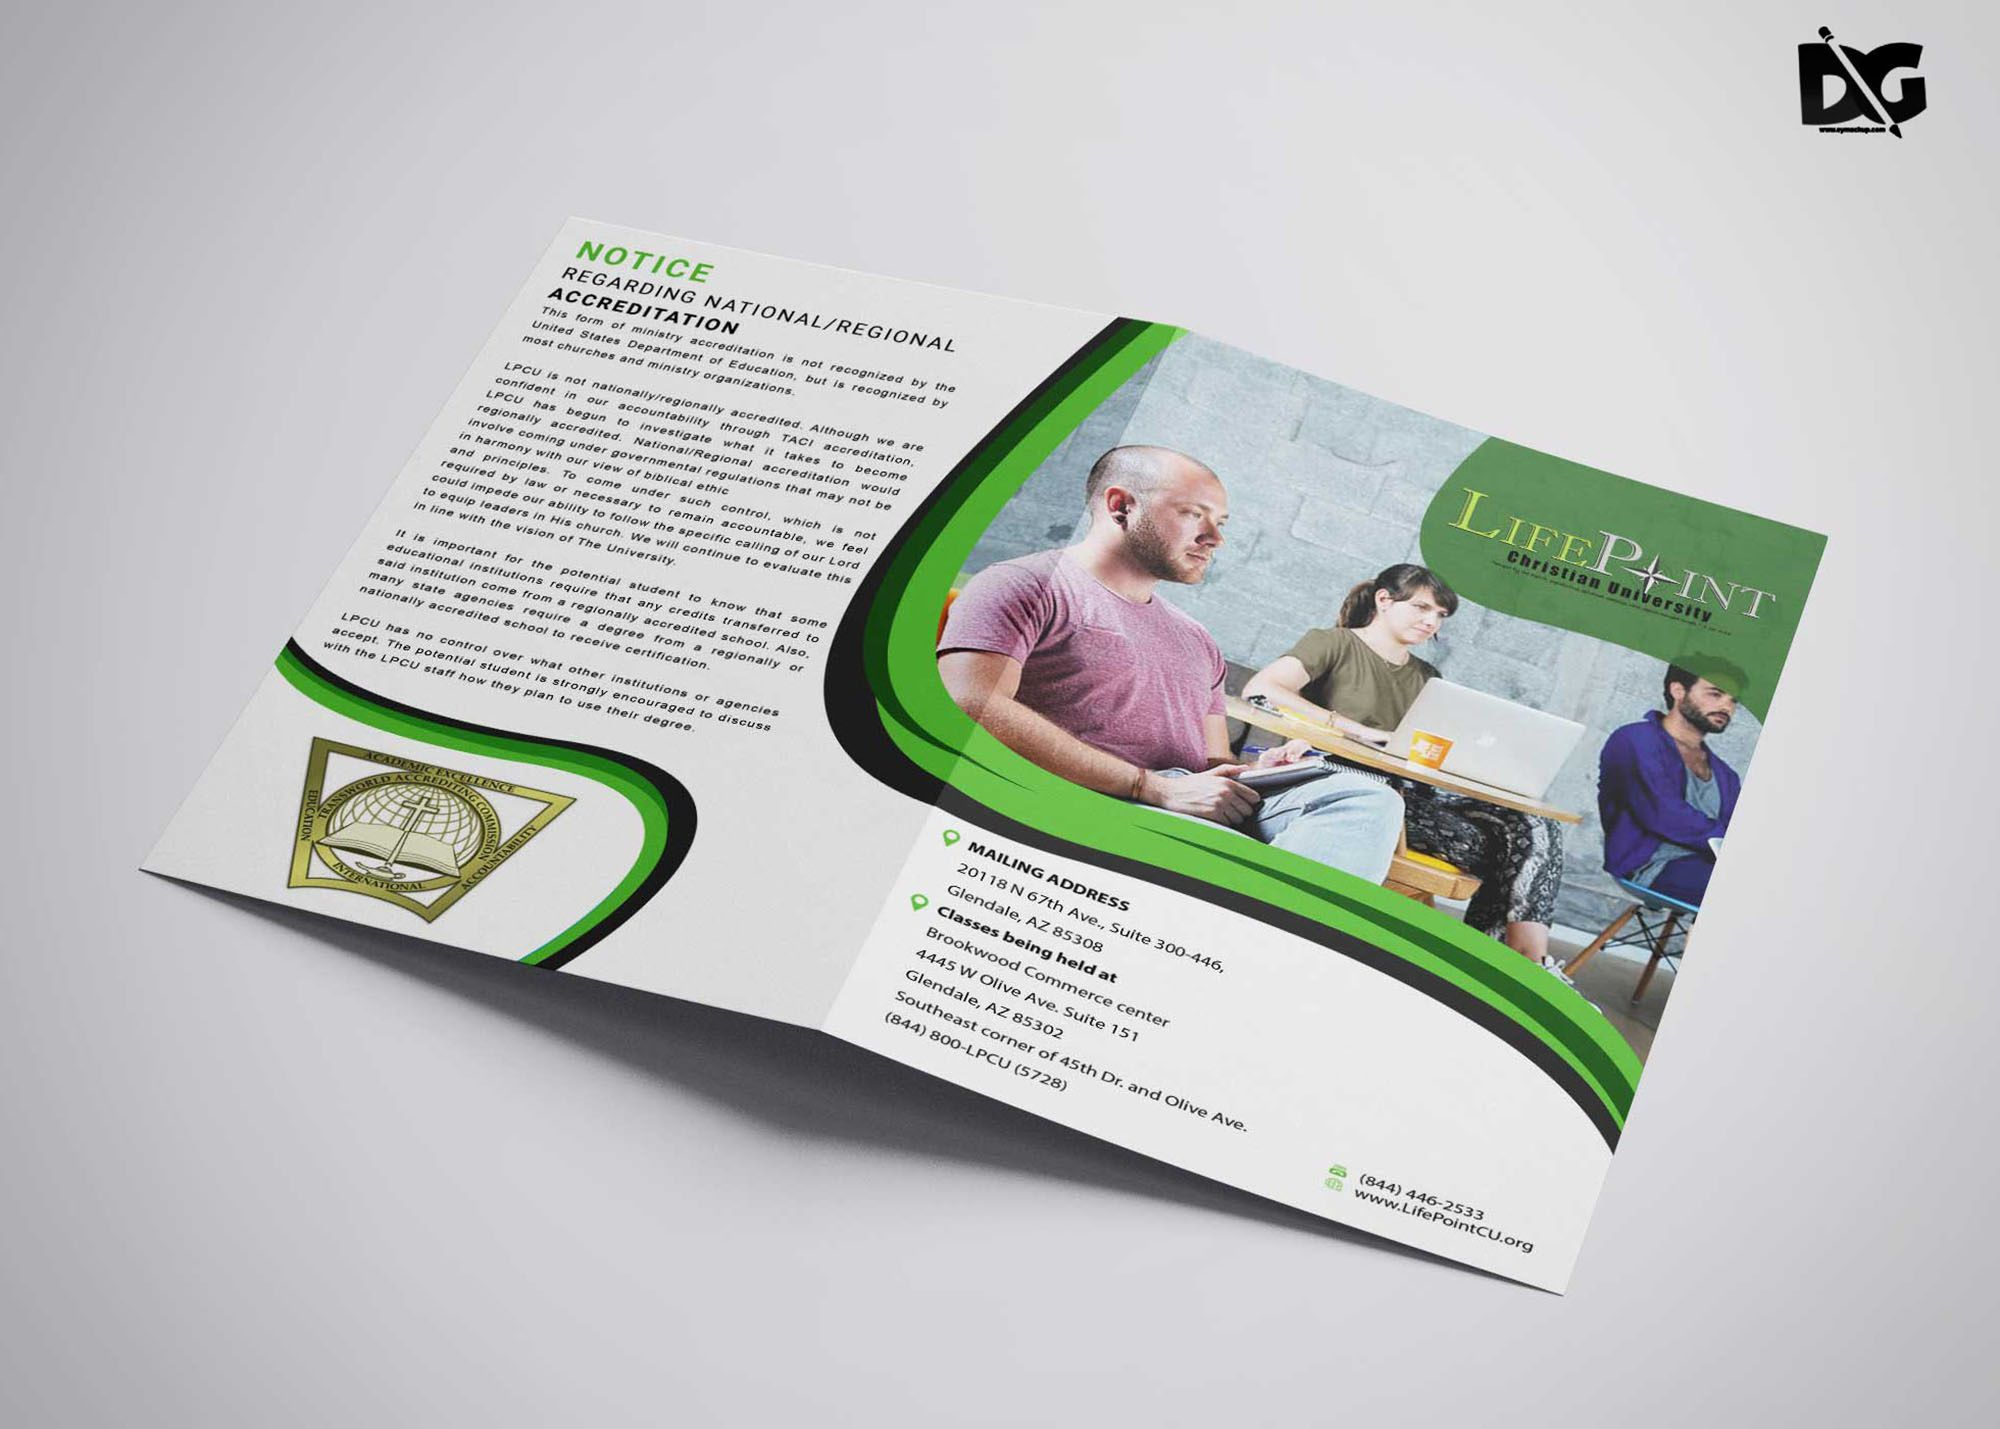 006 Impressive Brochure Design Template Free Download Psd Highest Quality Full